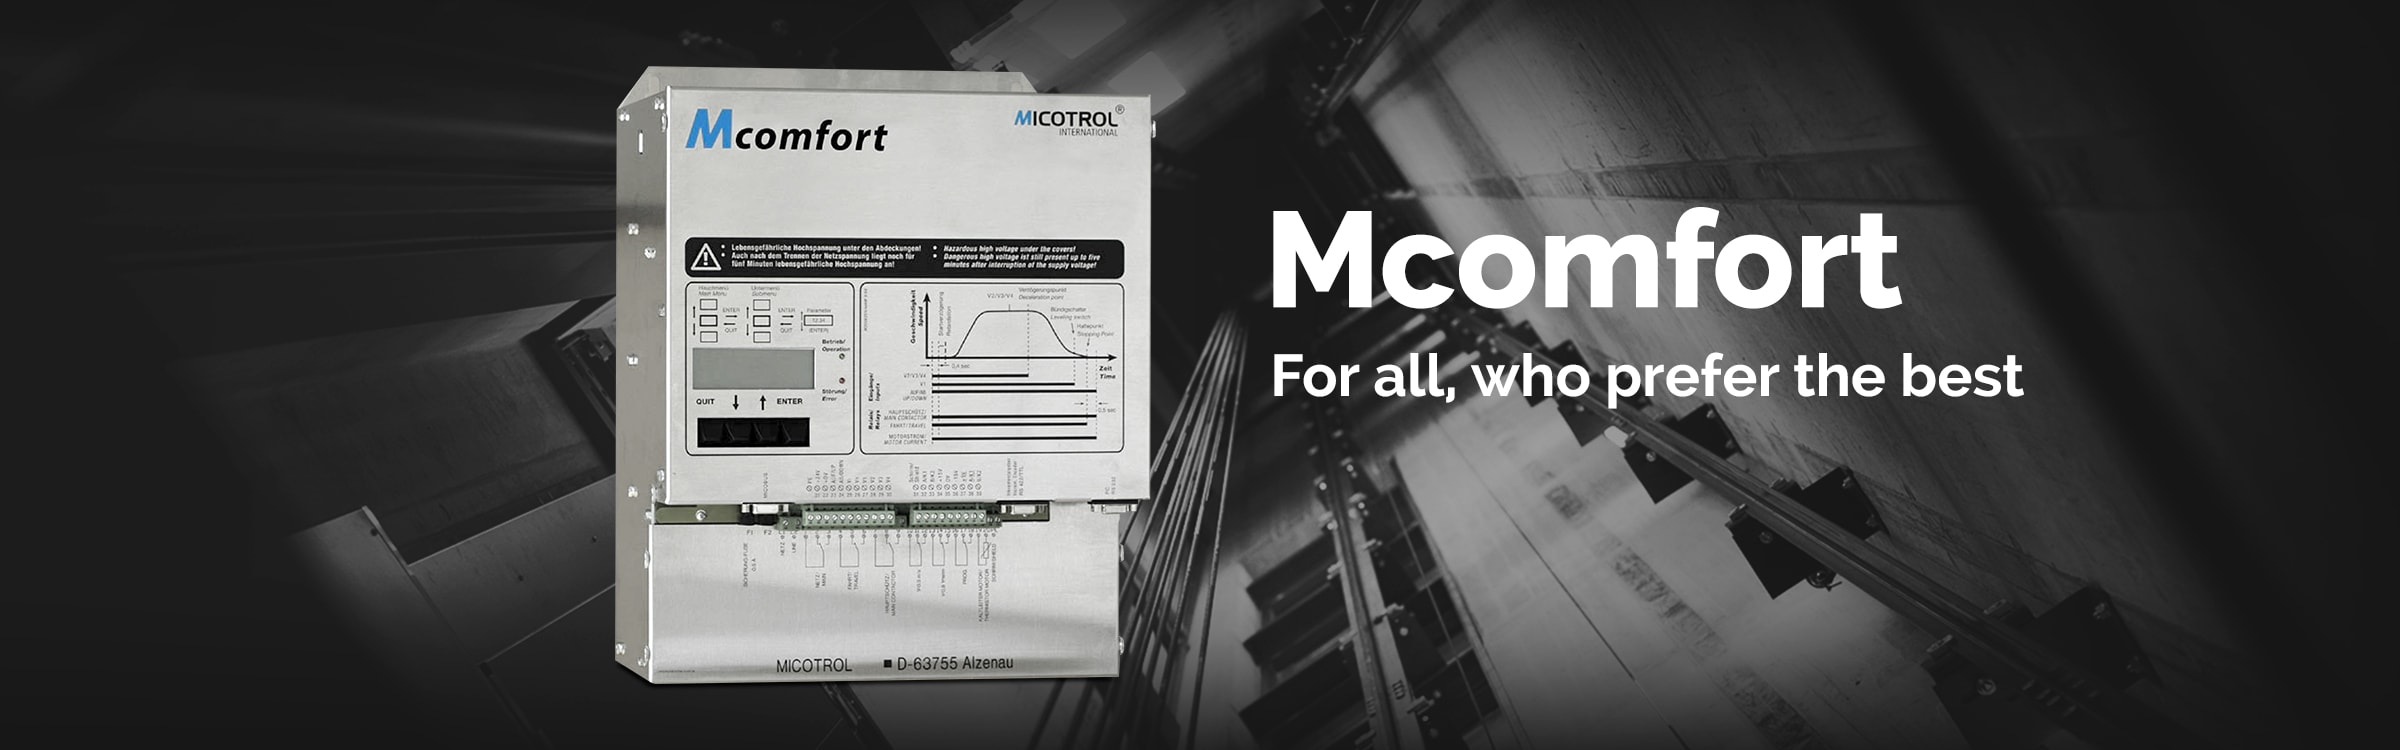 MICOTROL International GmbH